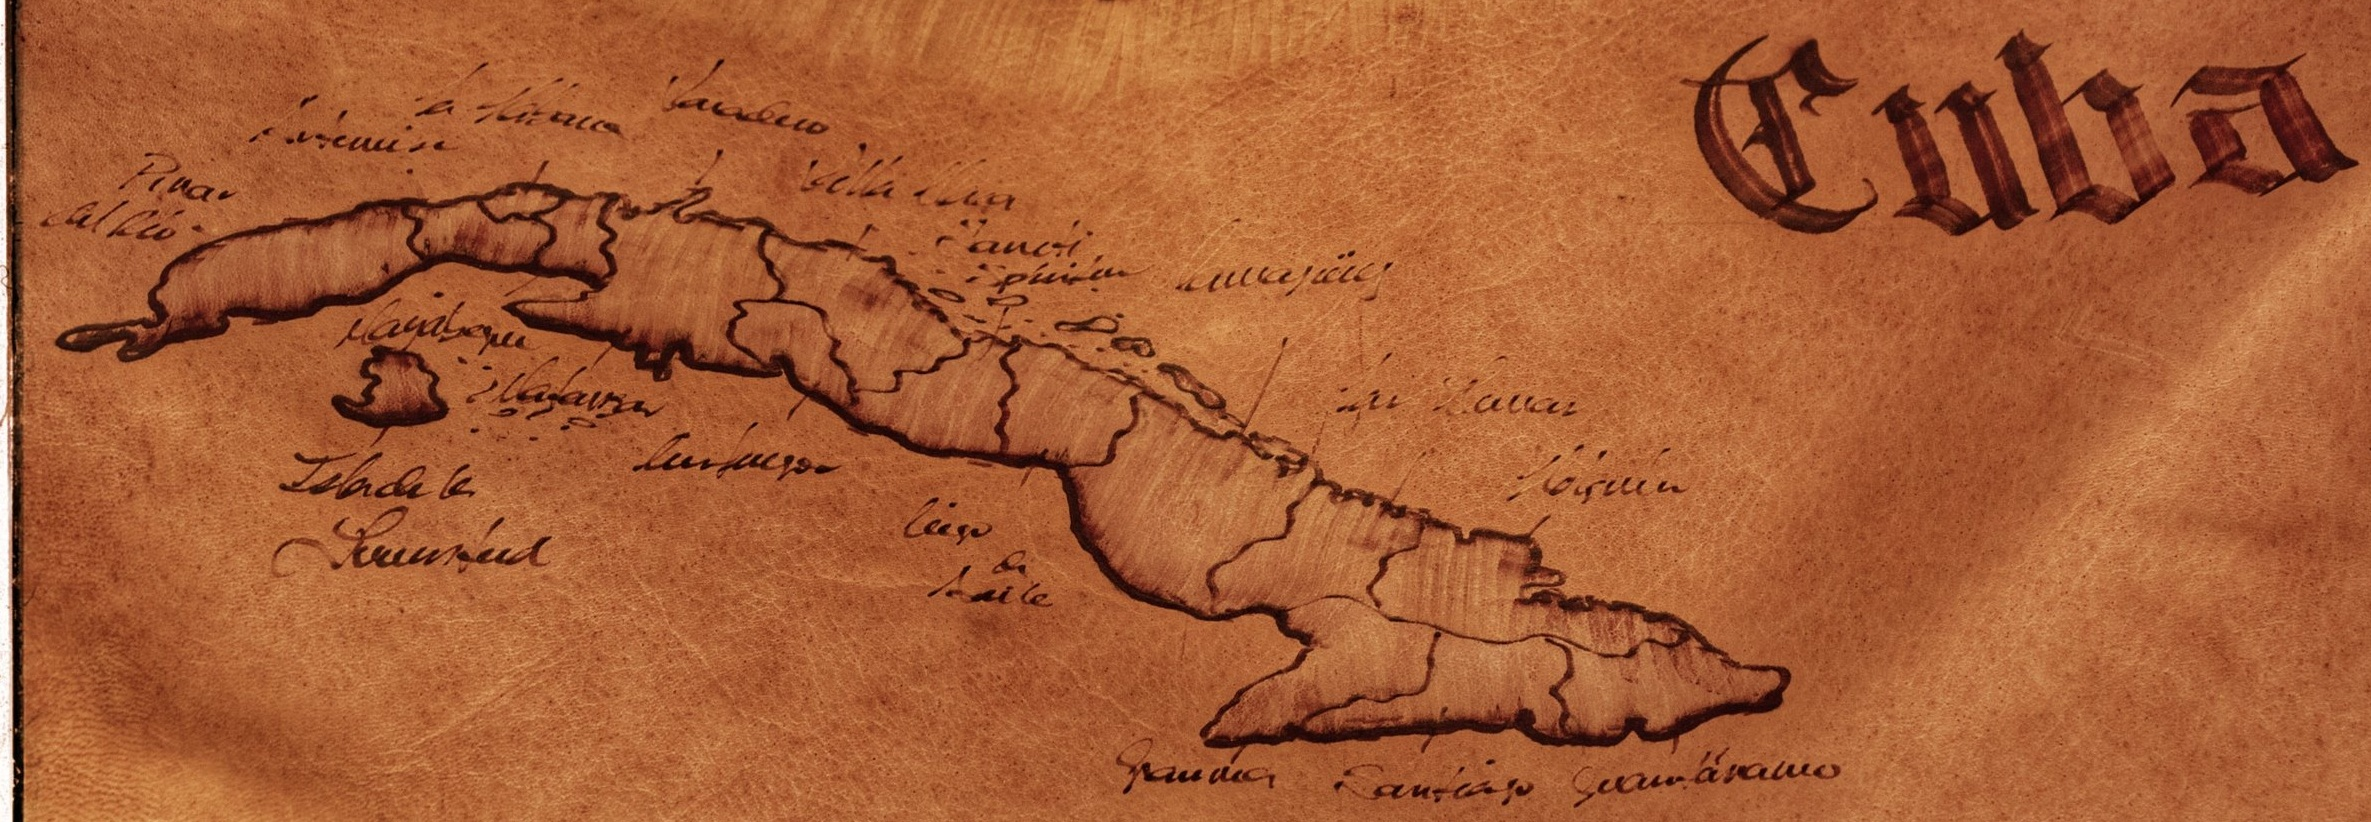 Cuba is 740 miles long and Havana is on the Northwest part of the island. We drove SW from Habana.